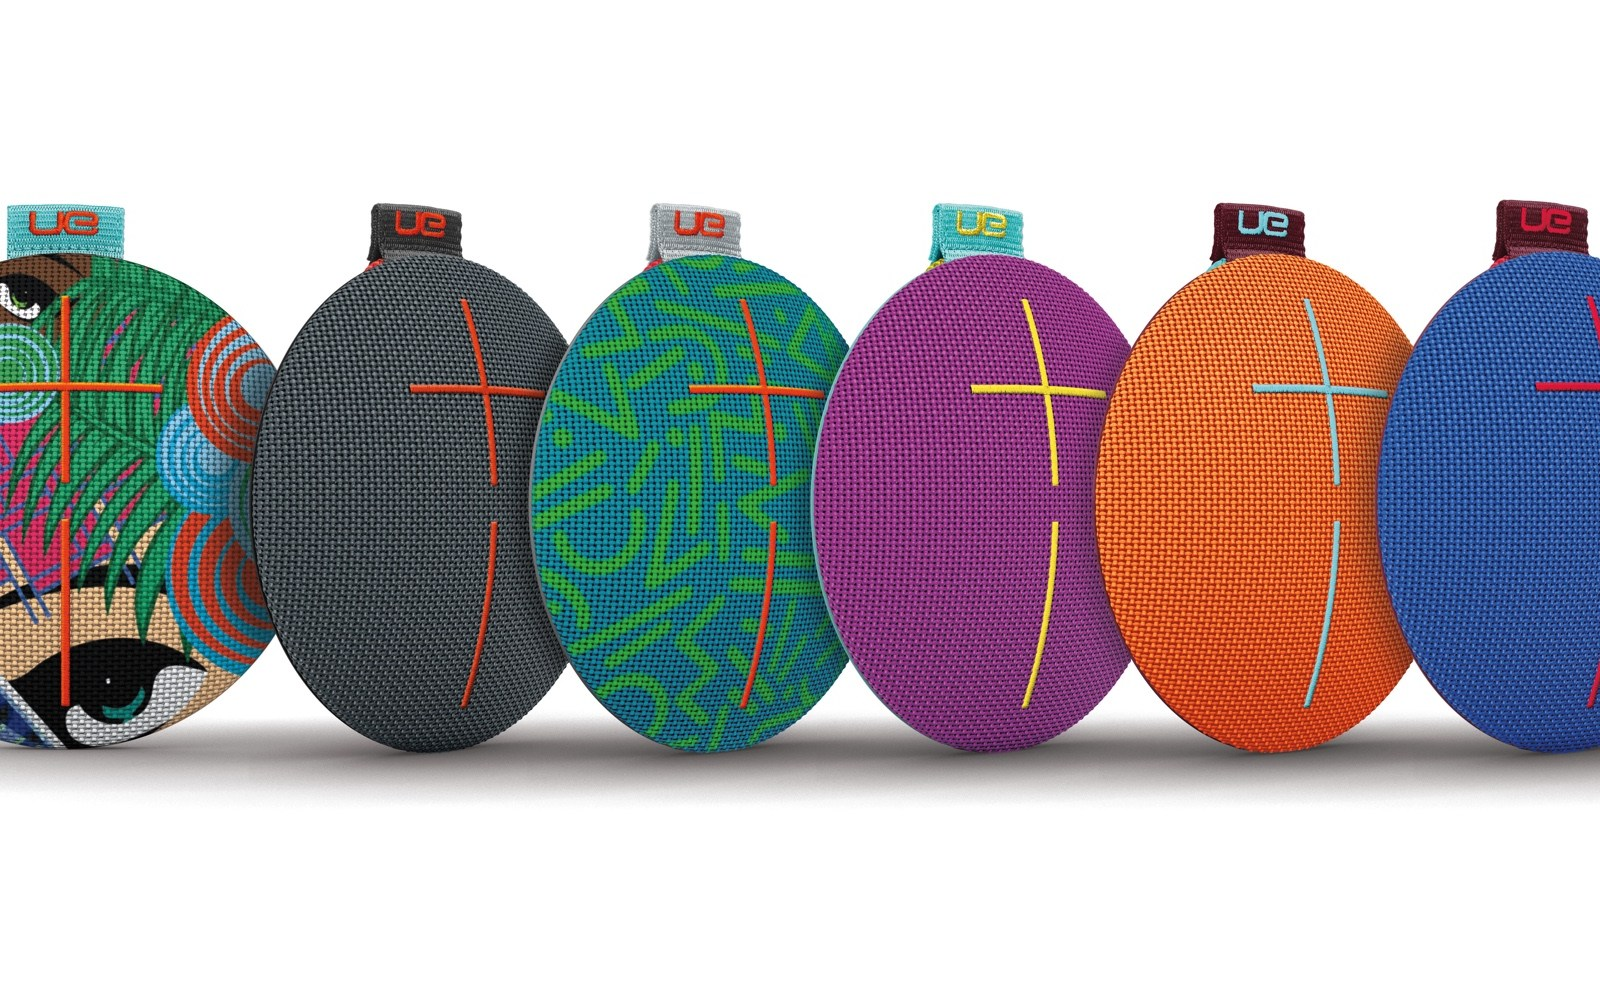 The UE Roll 2 is this summer's best Bluetooth speaker, but we don't recommend you buy it